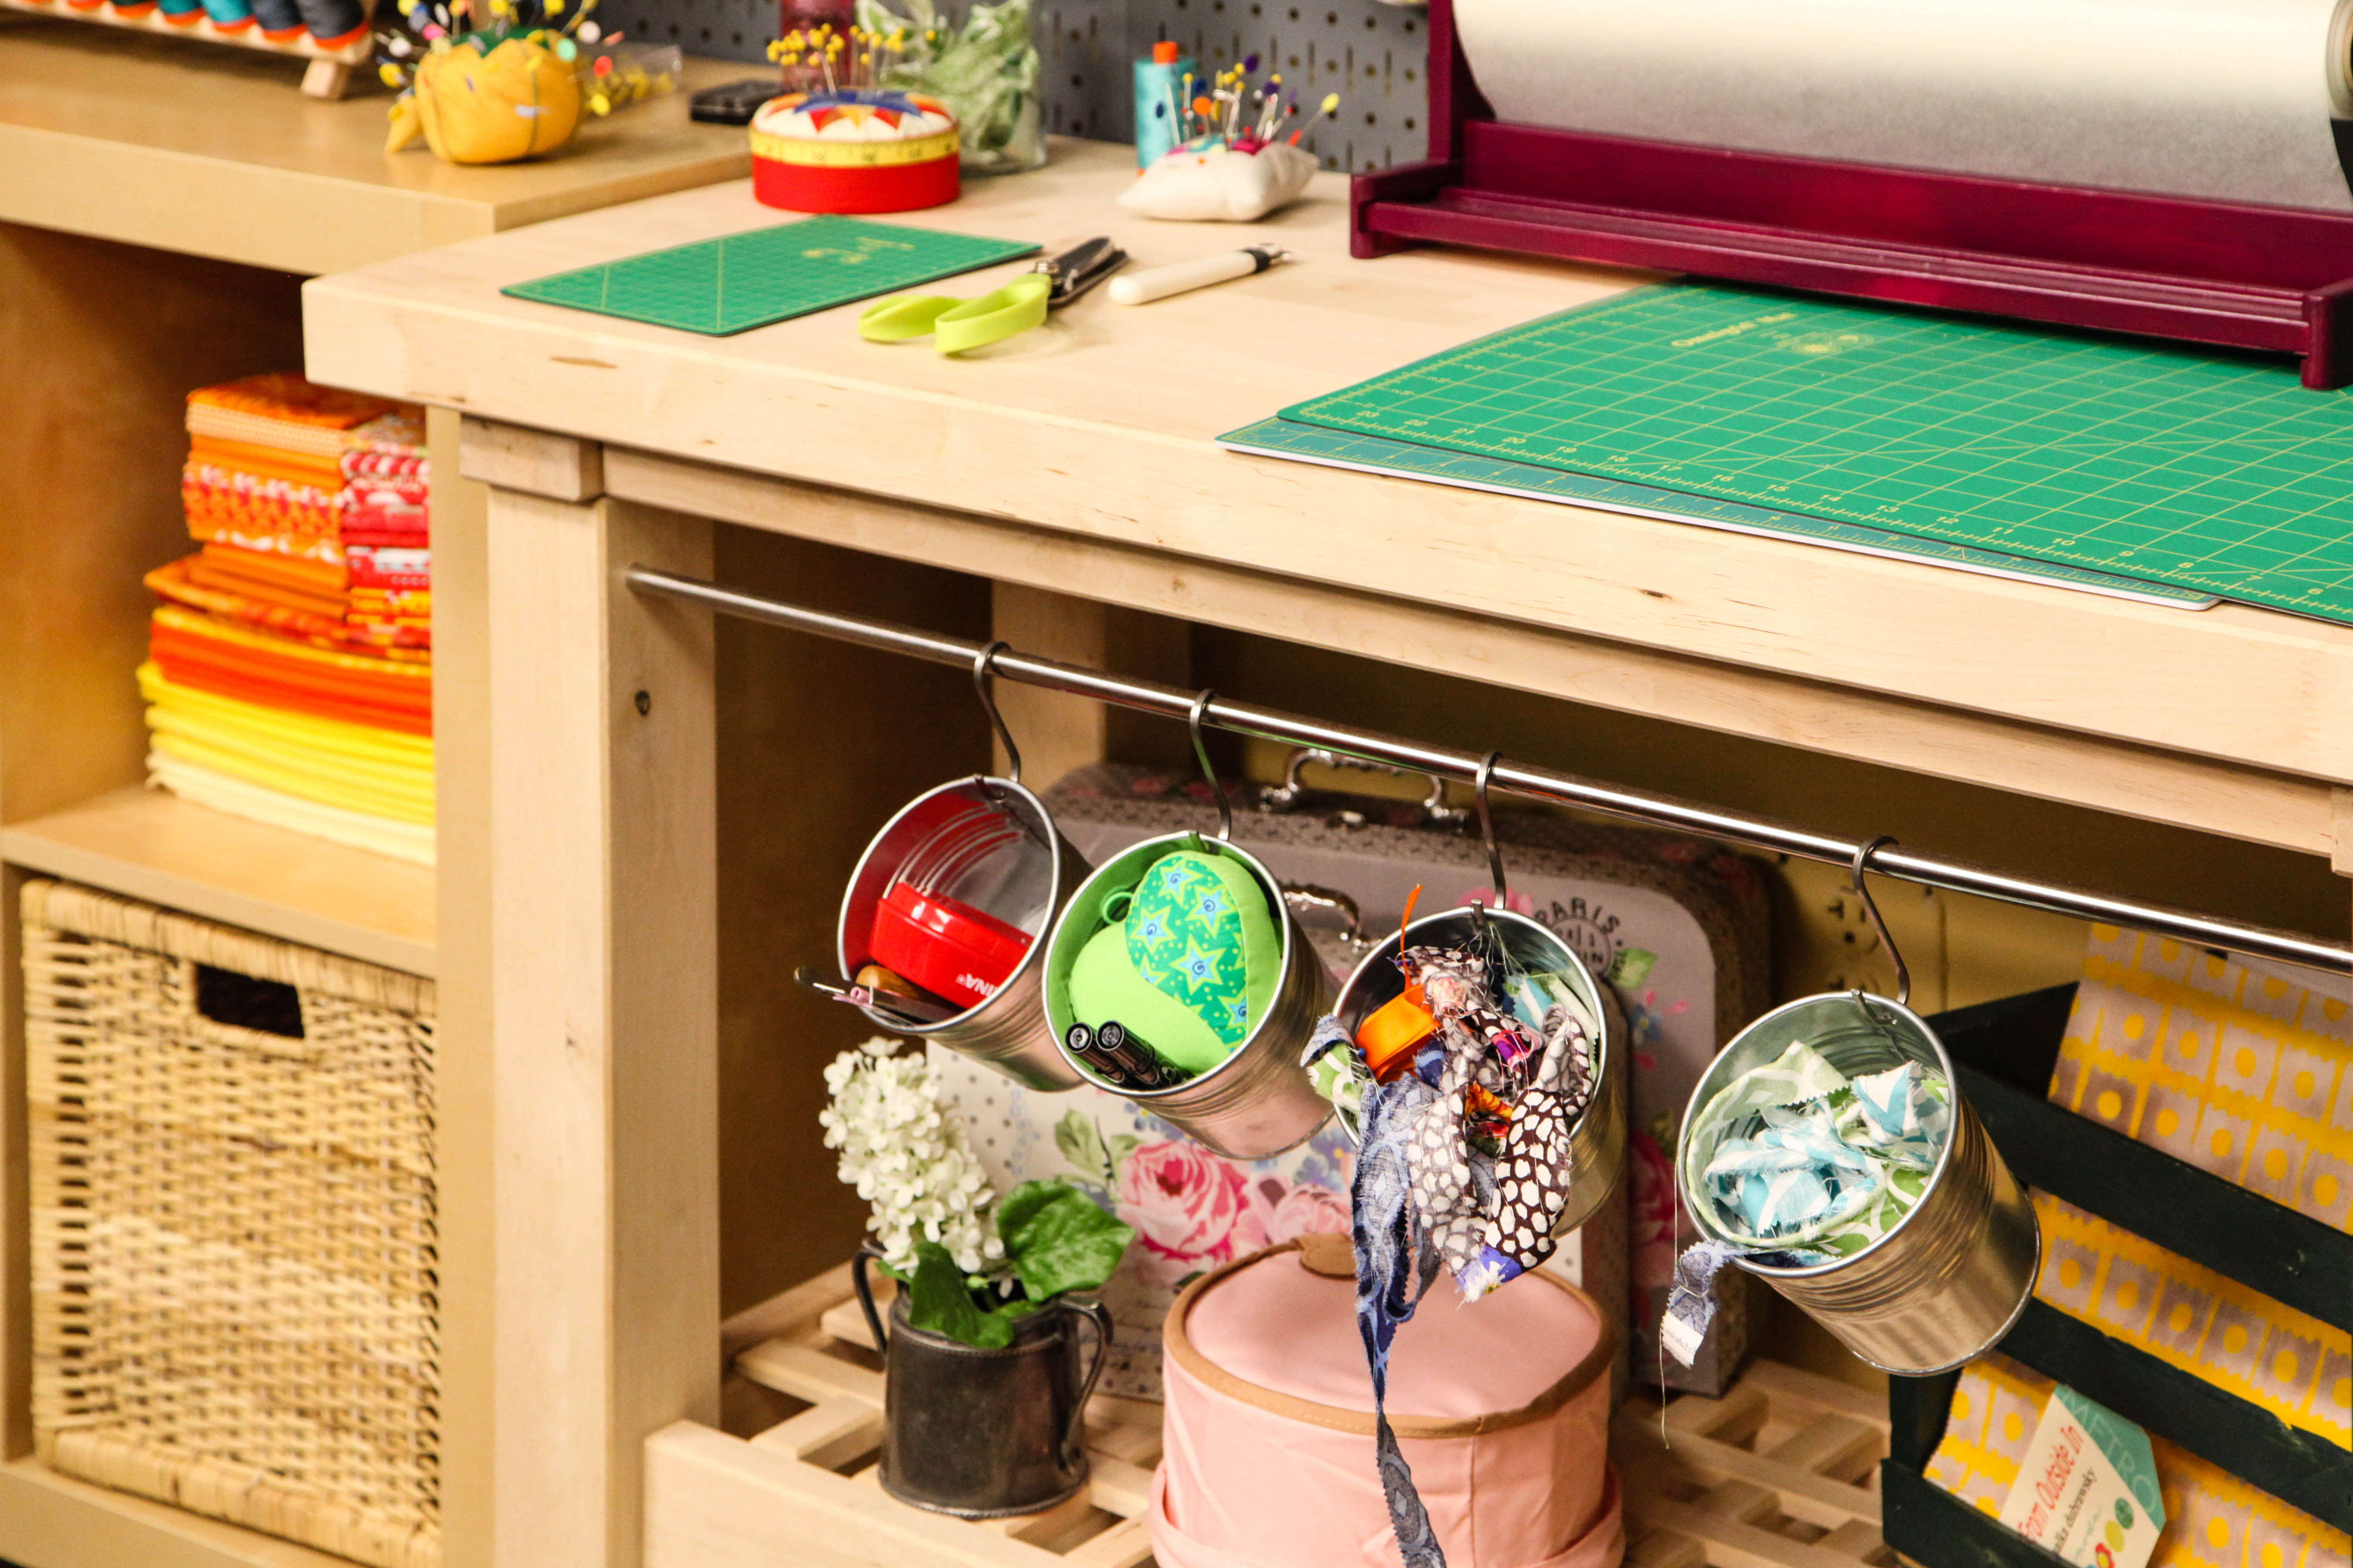 Stored Supplies in the Bluprint Quilting Studio